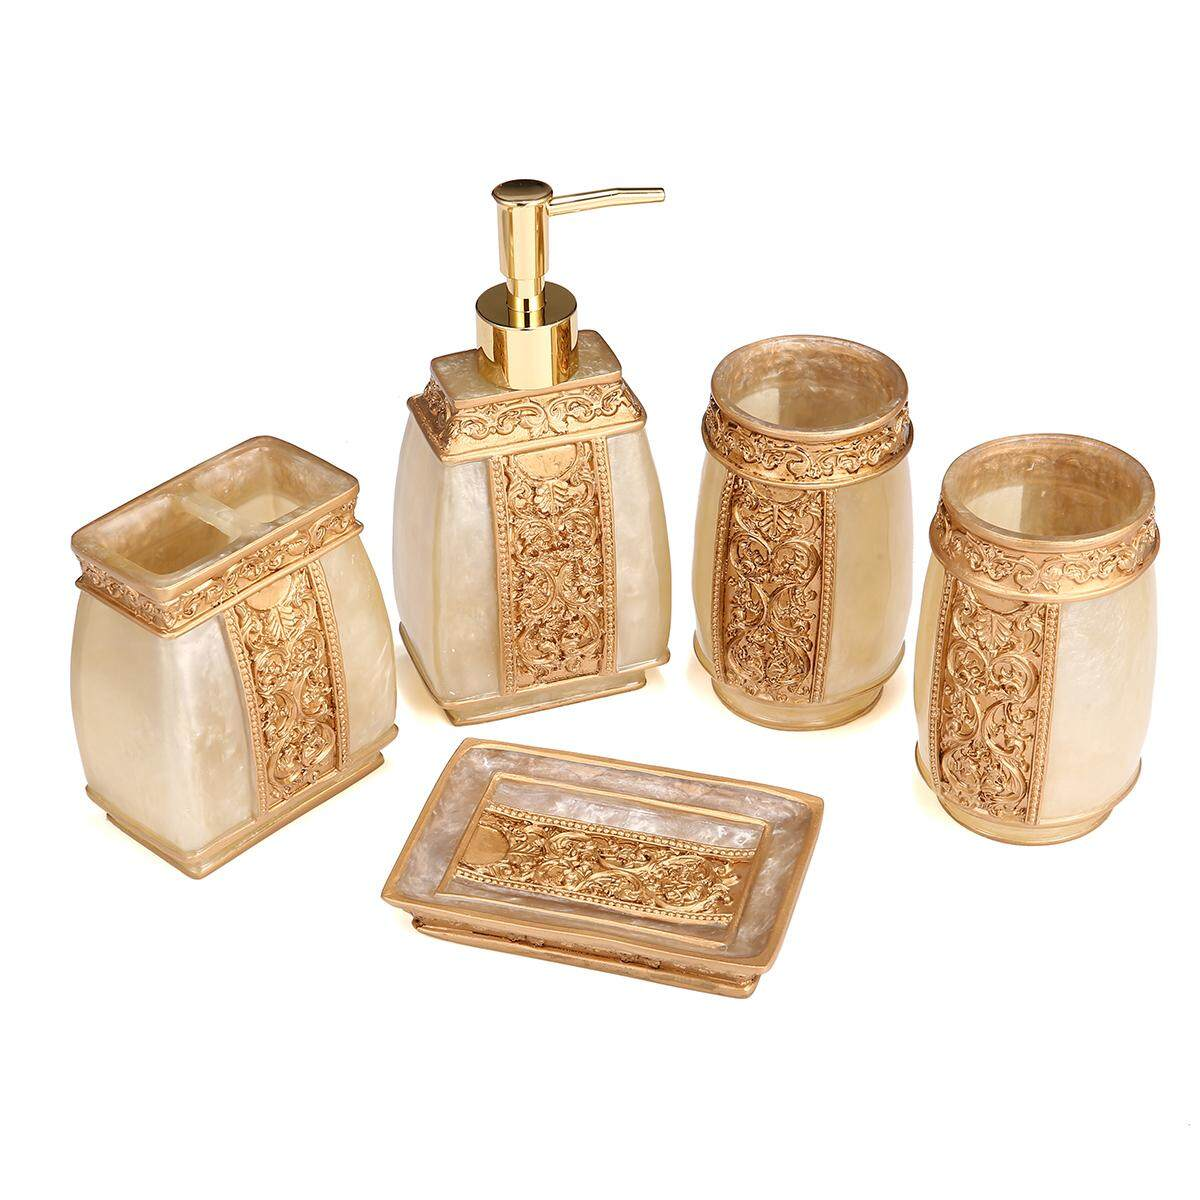 Bathroom Accessory Set Bath Resin Cup Toothbrush Holder Soap Dispenser 5 Piece By Moonbeam.